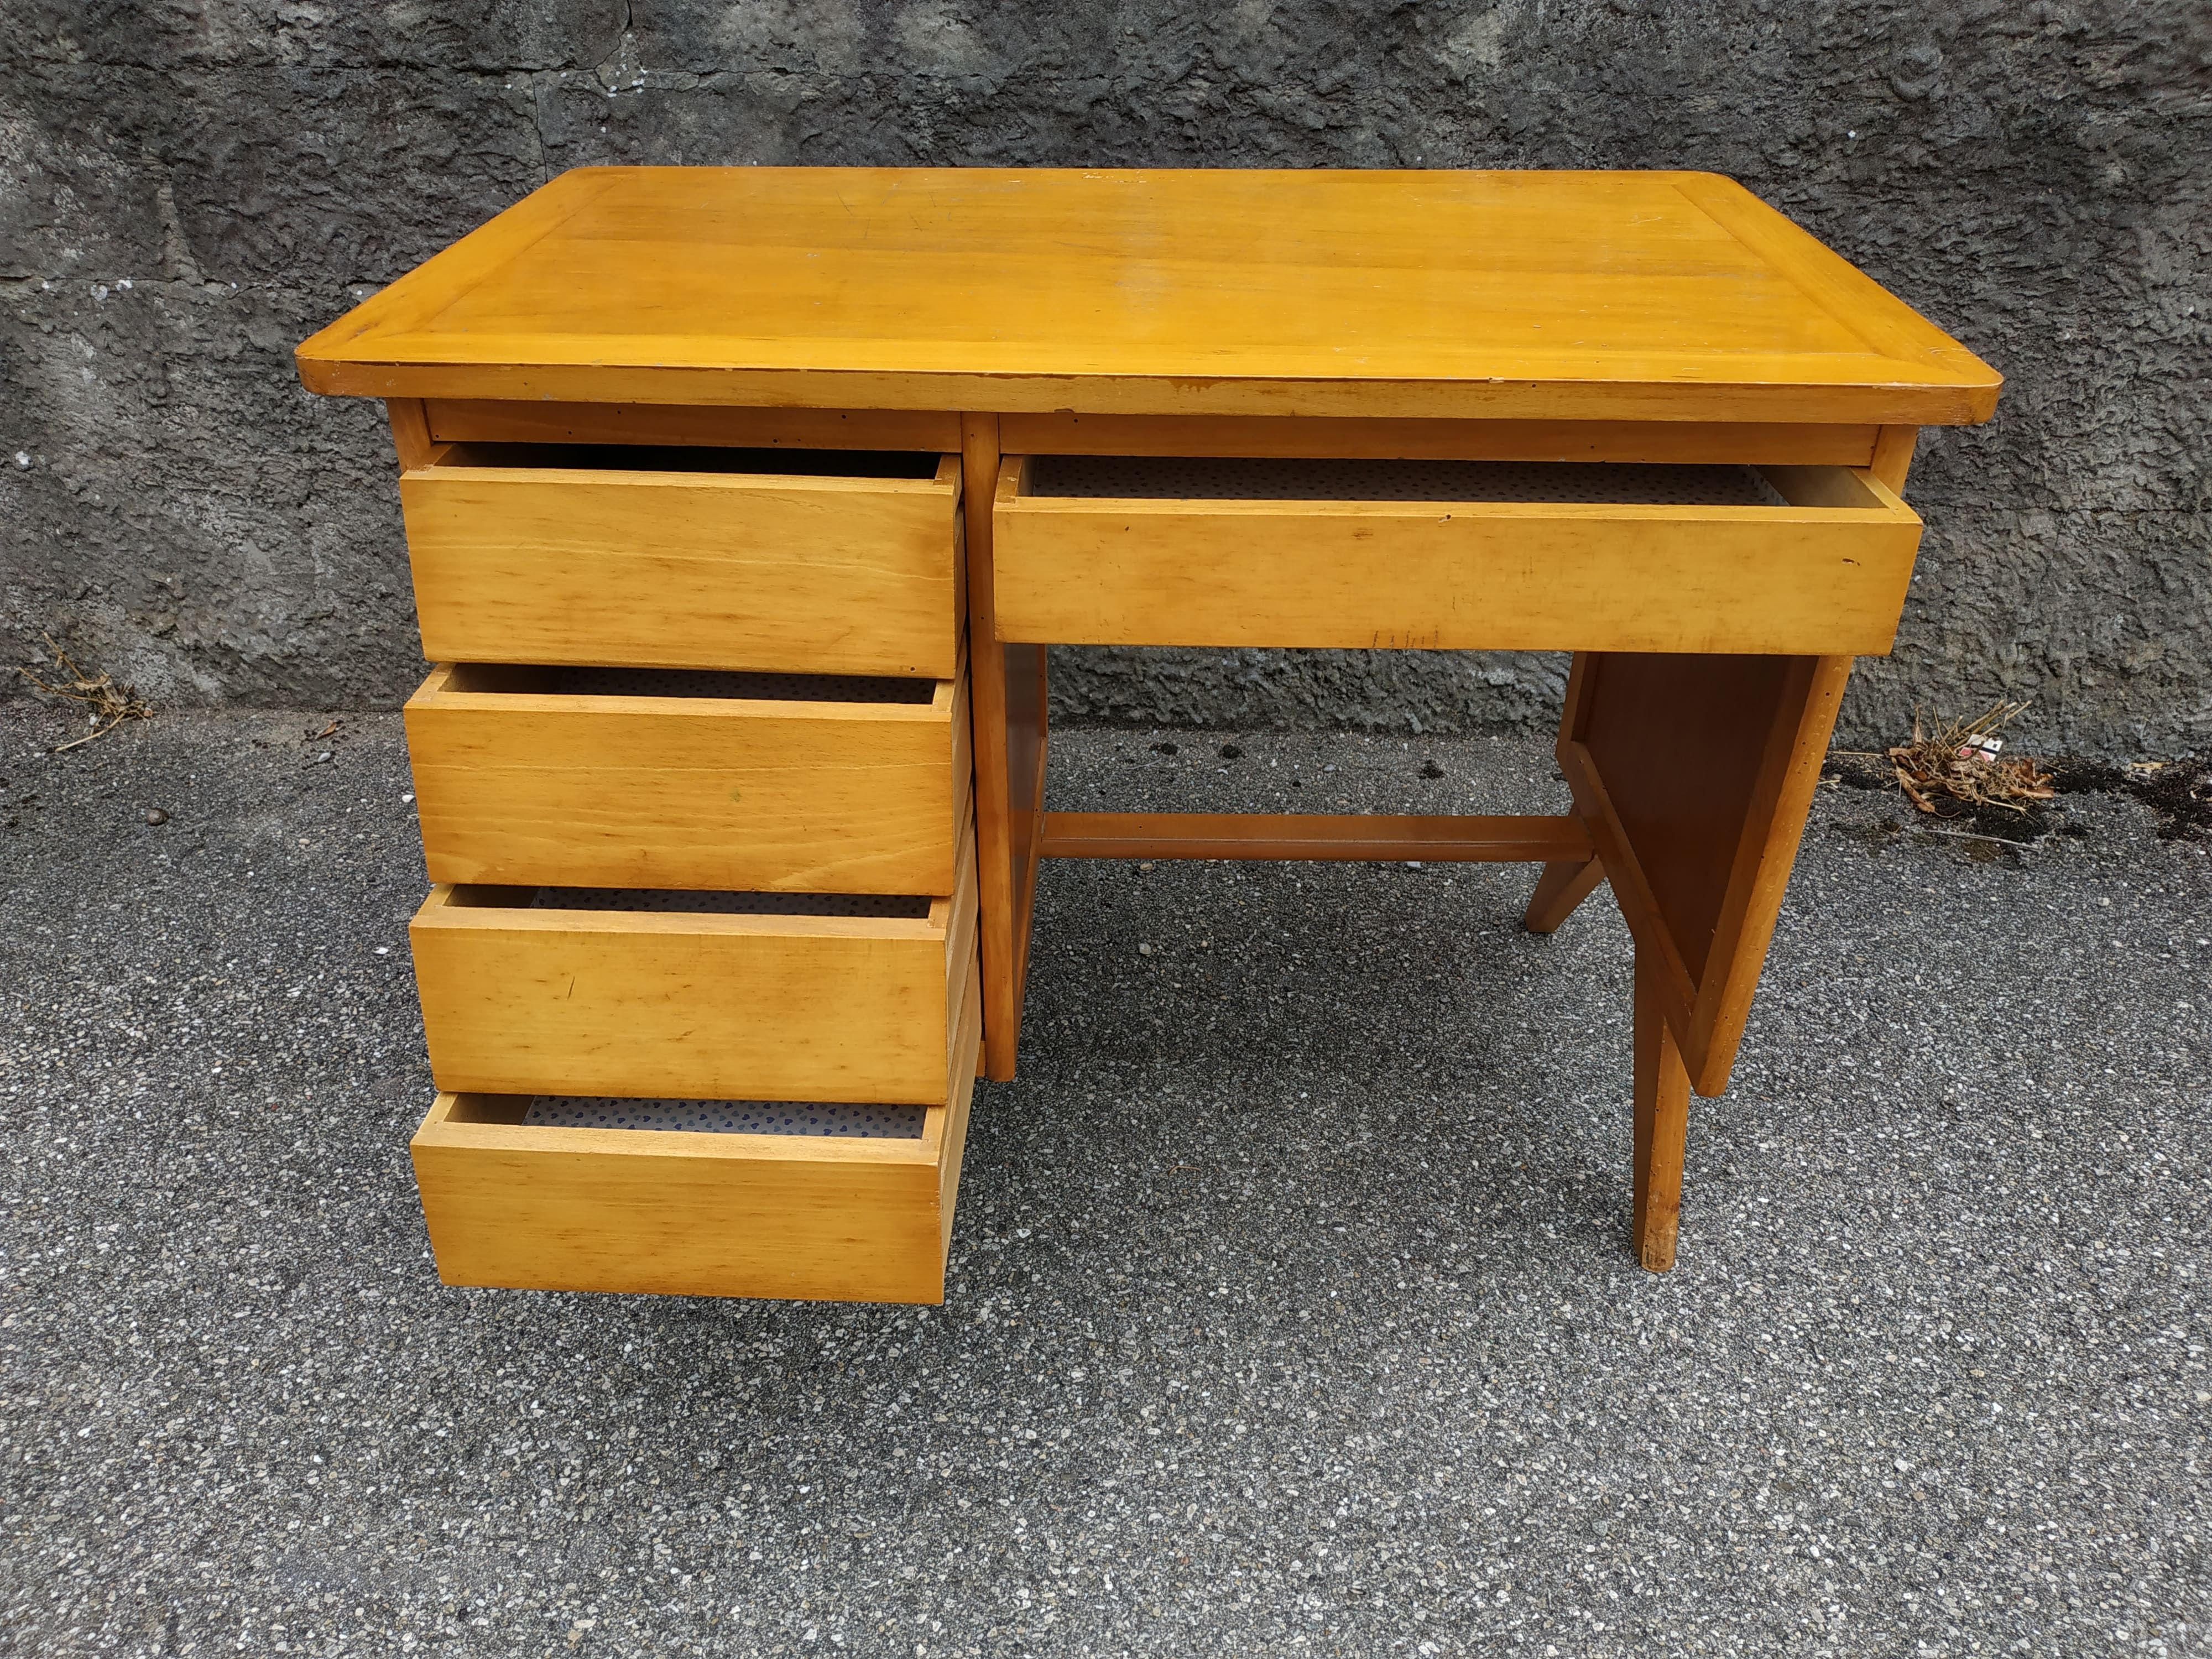 Vintage Yellow Wooden Desk Previous Next